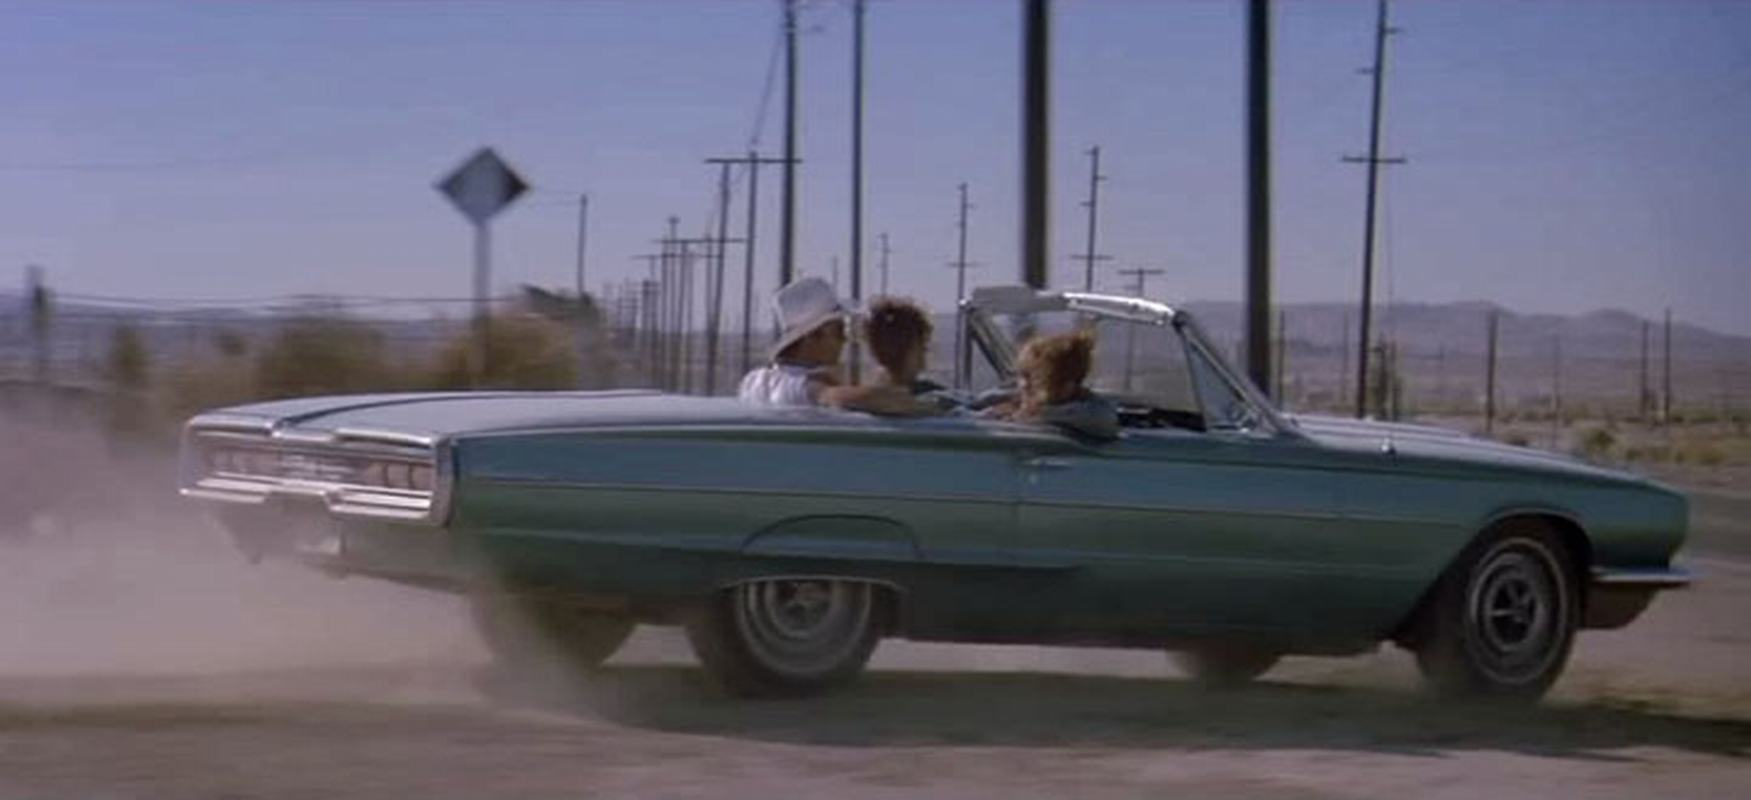 Thelma and Louise 1966 Thunderbird